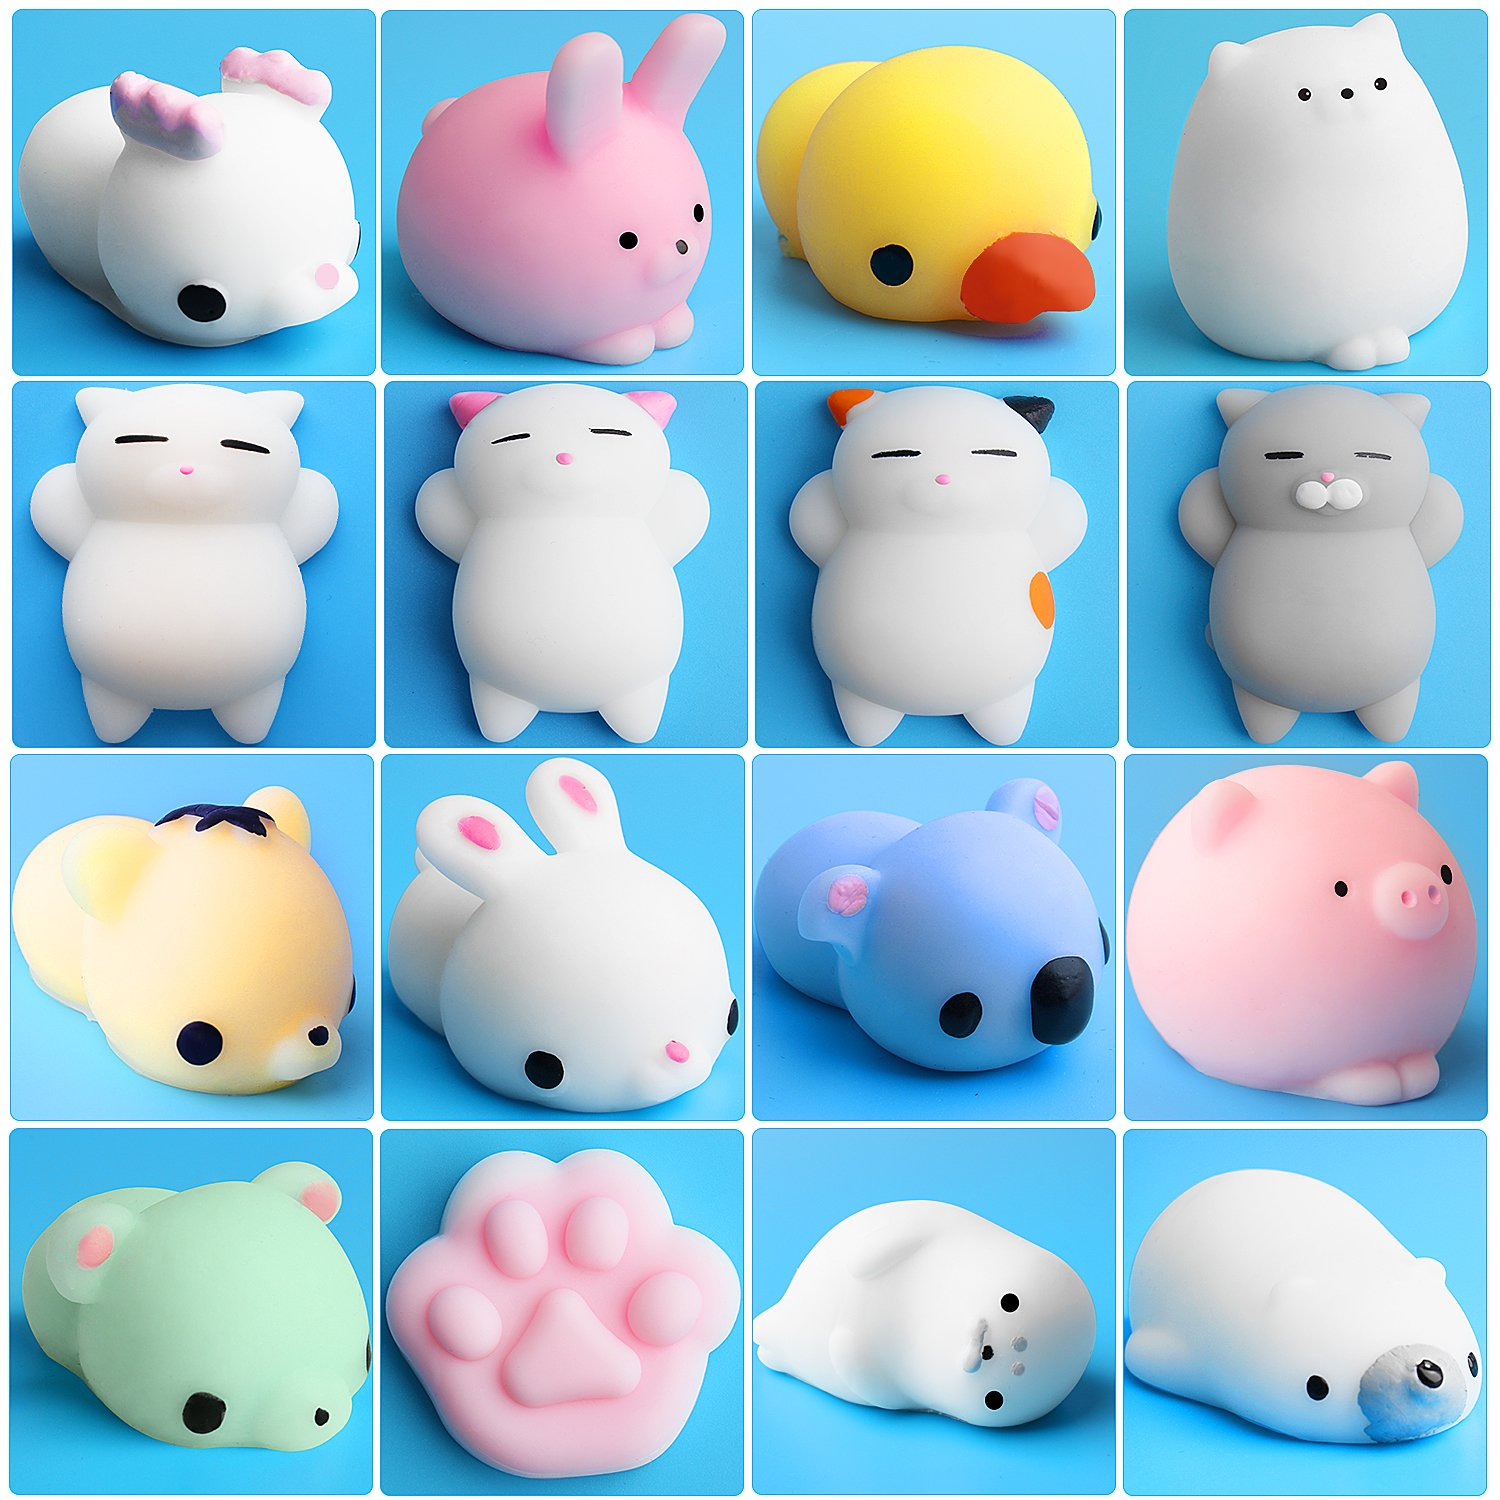 Mini Squishies Kawaii, Outee 16 Pcs Mochi Animals Squishy Toys Kawaii Squishies Mochi Squishy Kawaii Cat Stress Relief Squishy Mochi Toys Stress Animals Mochi Cat Squishy Stress Toys with Felt Bag